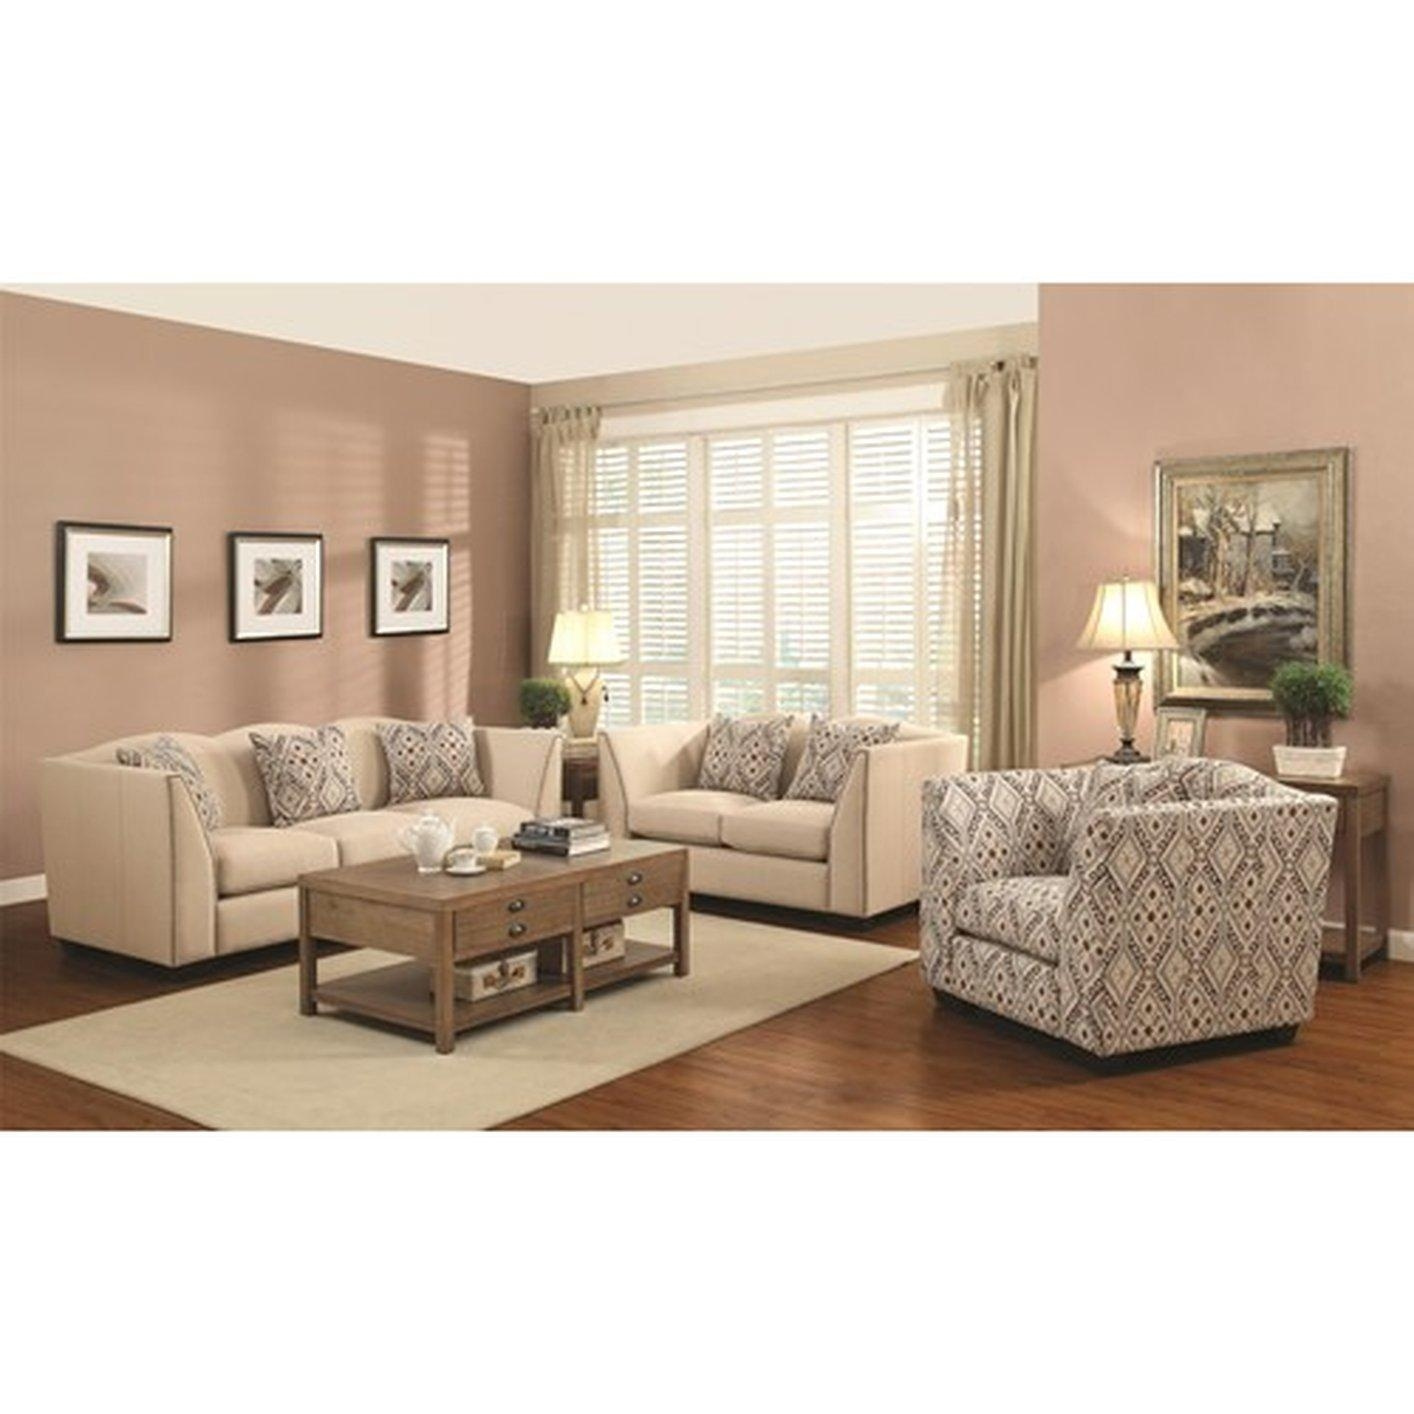 Siana Beige Fabric Accent Chair – Steal A Sofa Furniture Outlet With Regard To Accent Sofa Chairs (View 7 of 20)